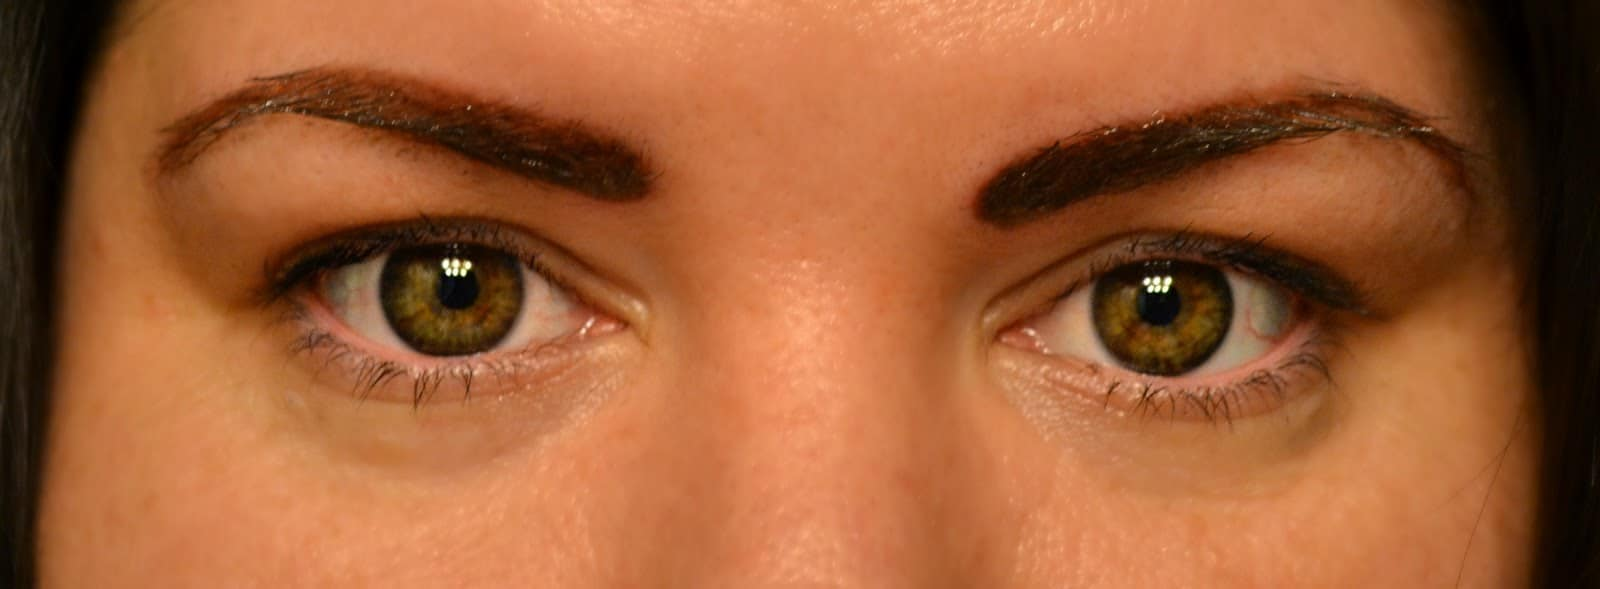 How To Make My Eyebrows Look More Natural